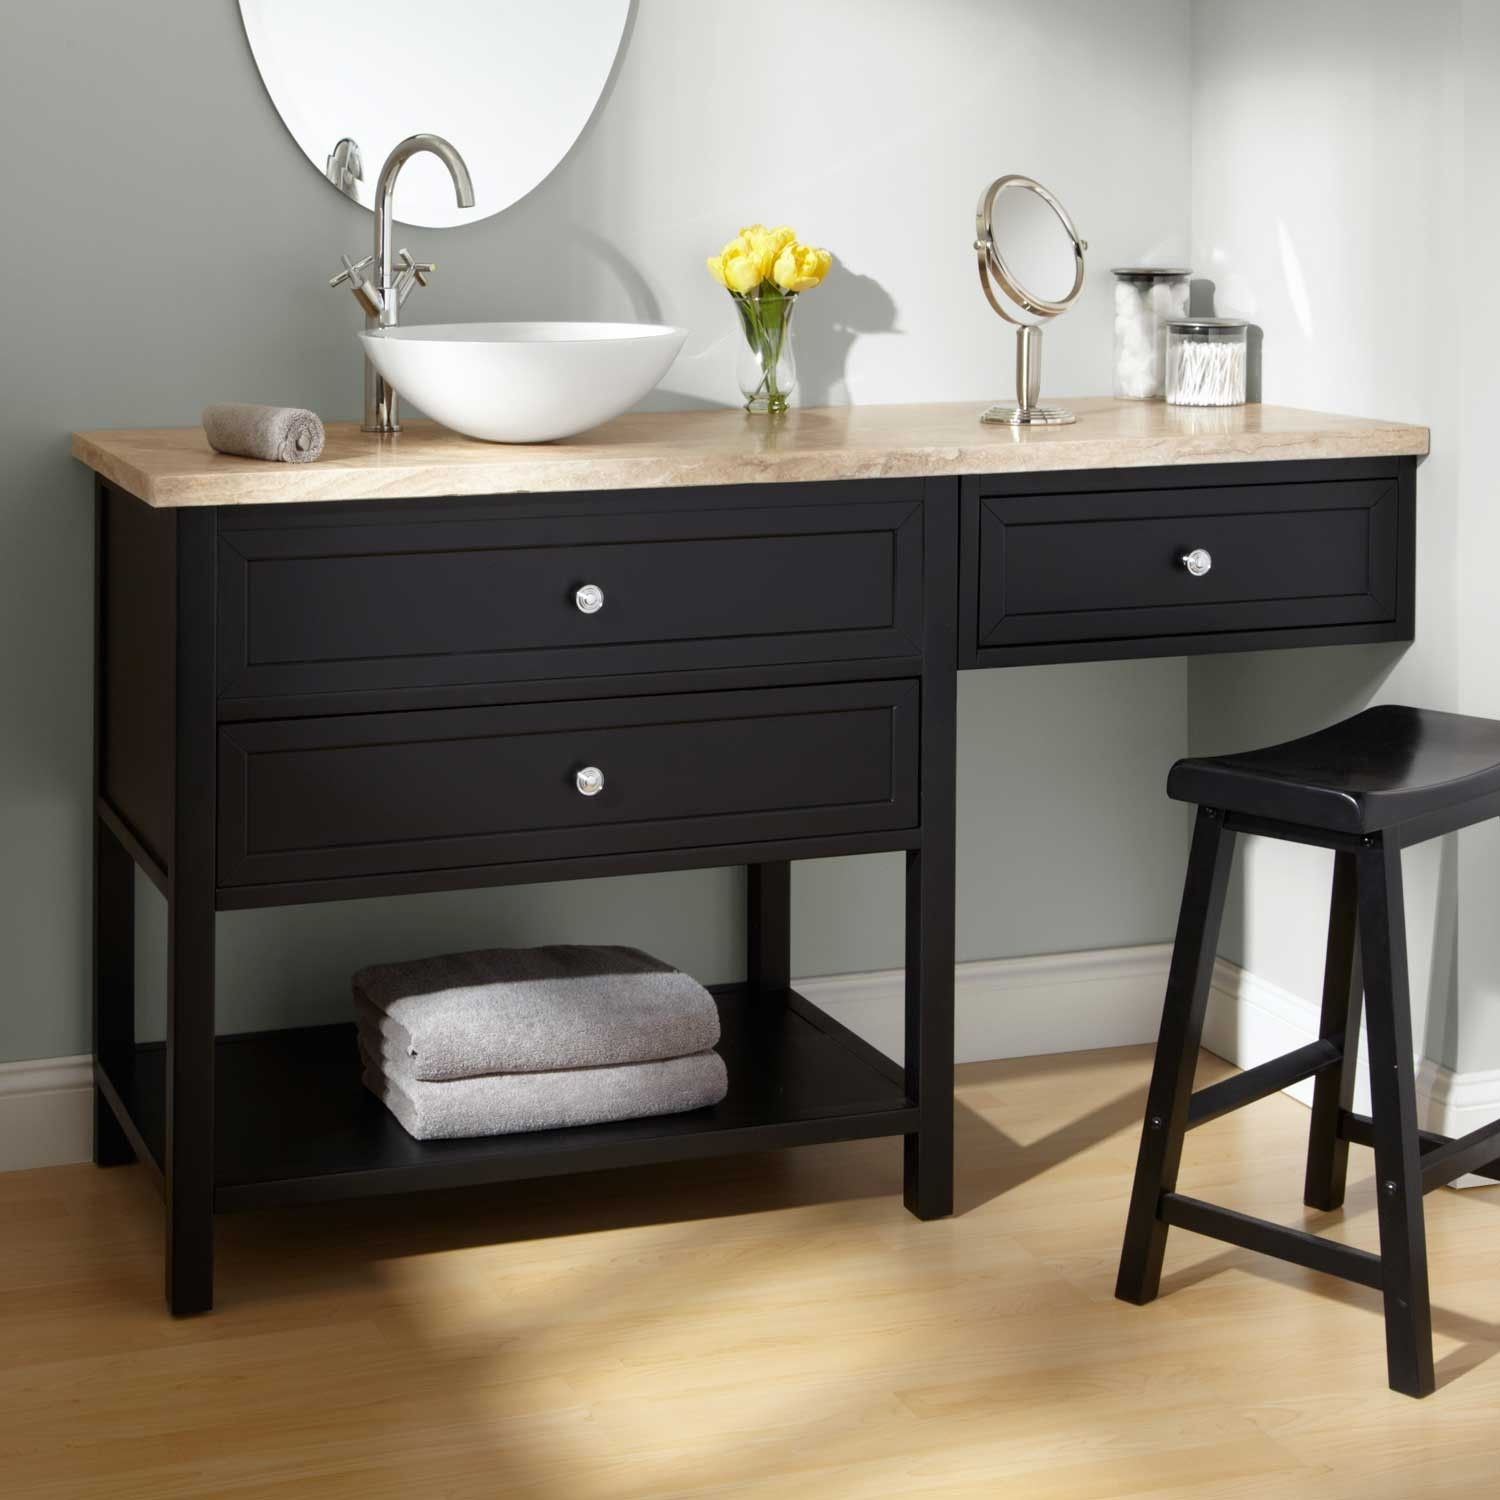 "Bathroom Vanity And Sink bathroom makeup vanity and chair |  sink vanities / 60"" taren"